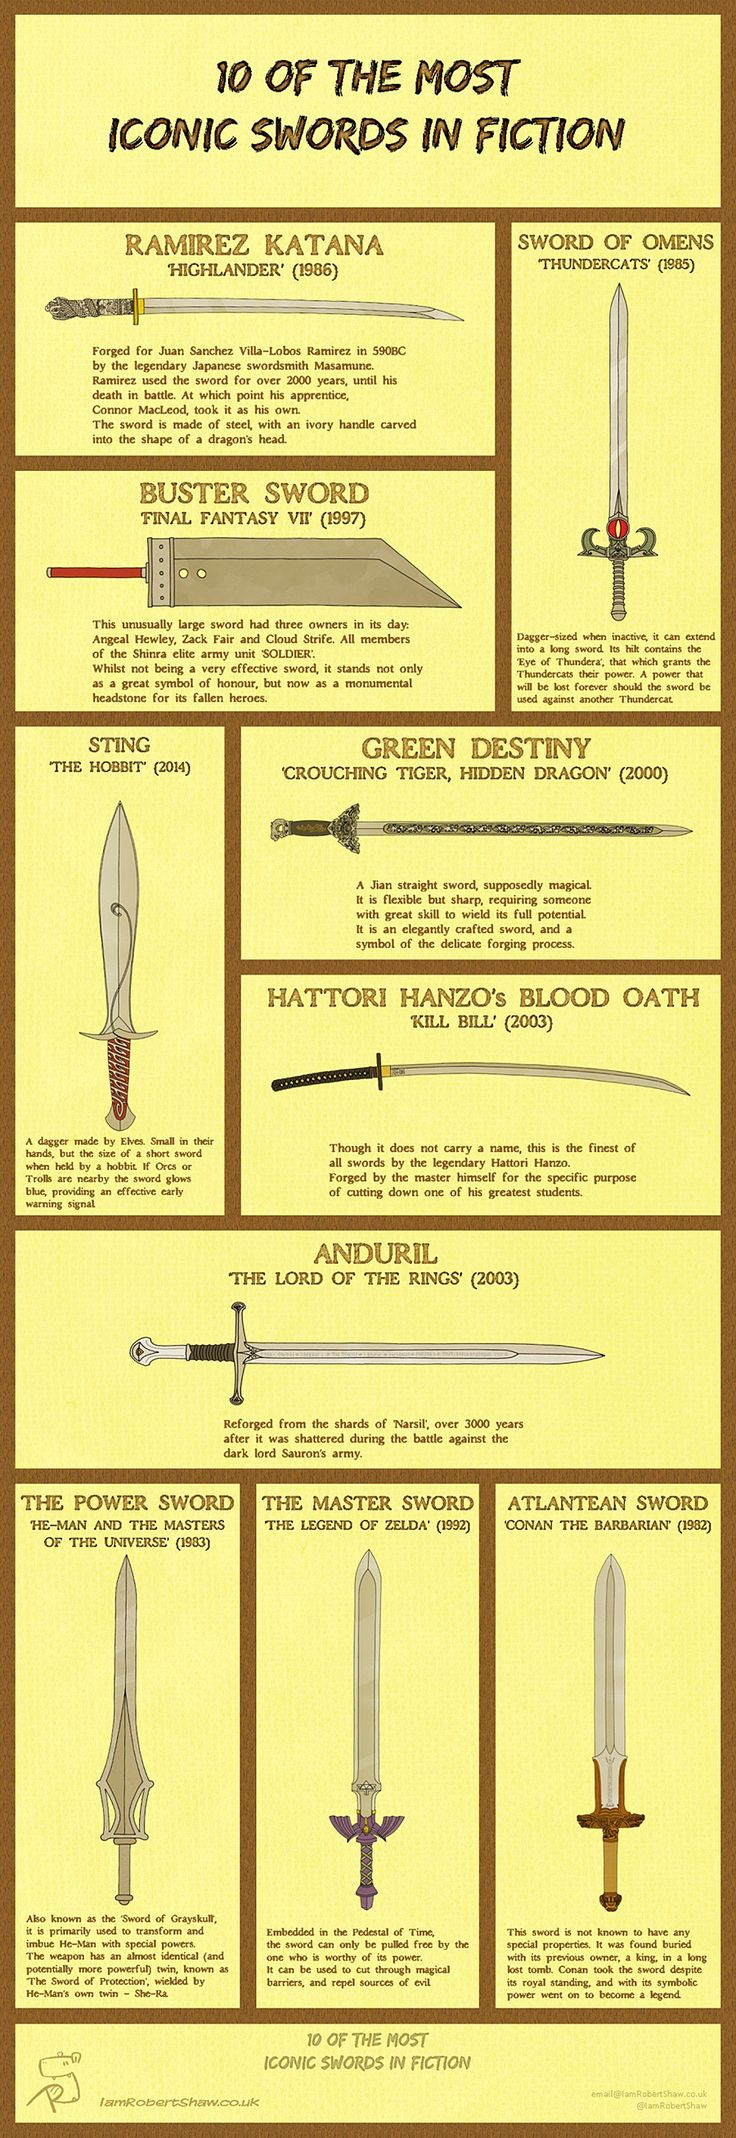 10 of the Most Iconic Swords in Fiction http://geekxgirls.com/article.php?ID=3745